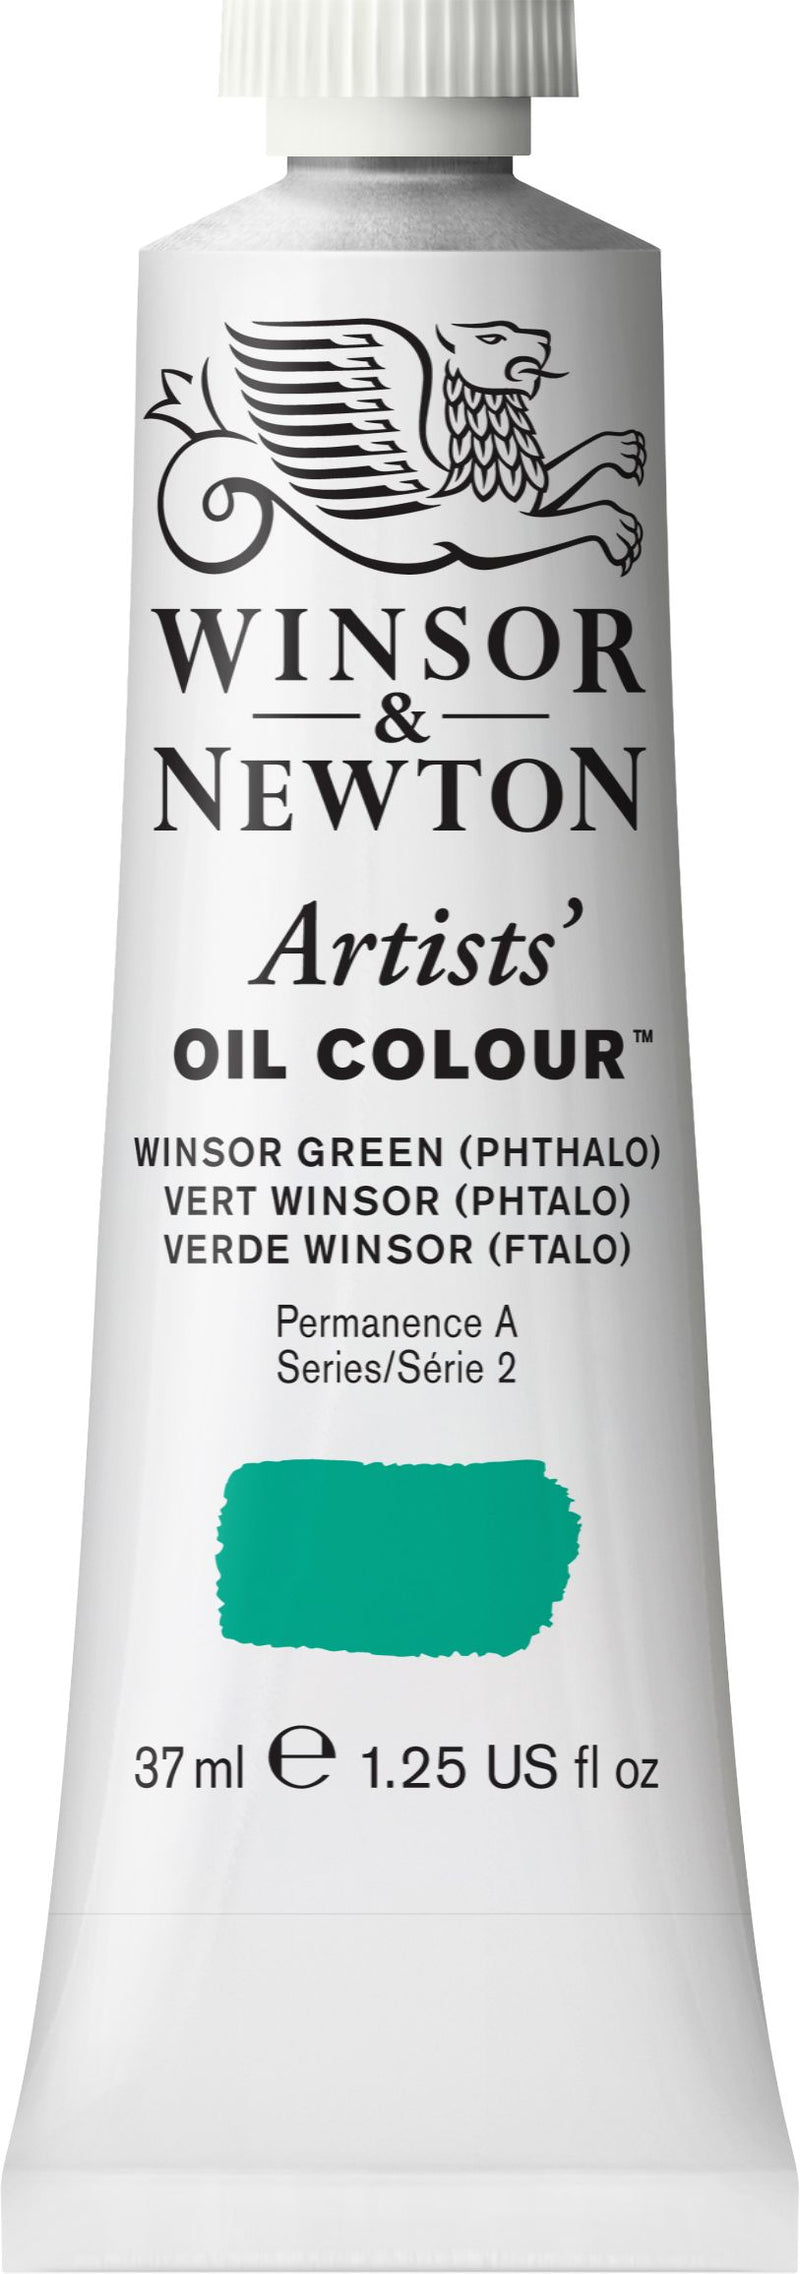 Winsor Newton Artist Oil Winsor Green (Phthalo) 720 - Series 2 - 37ml tube